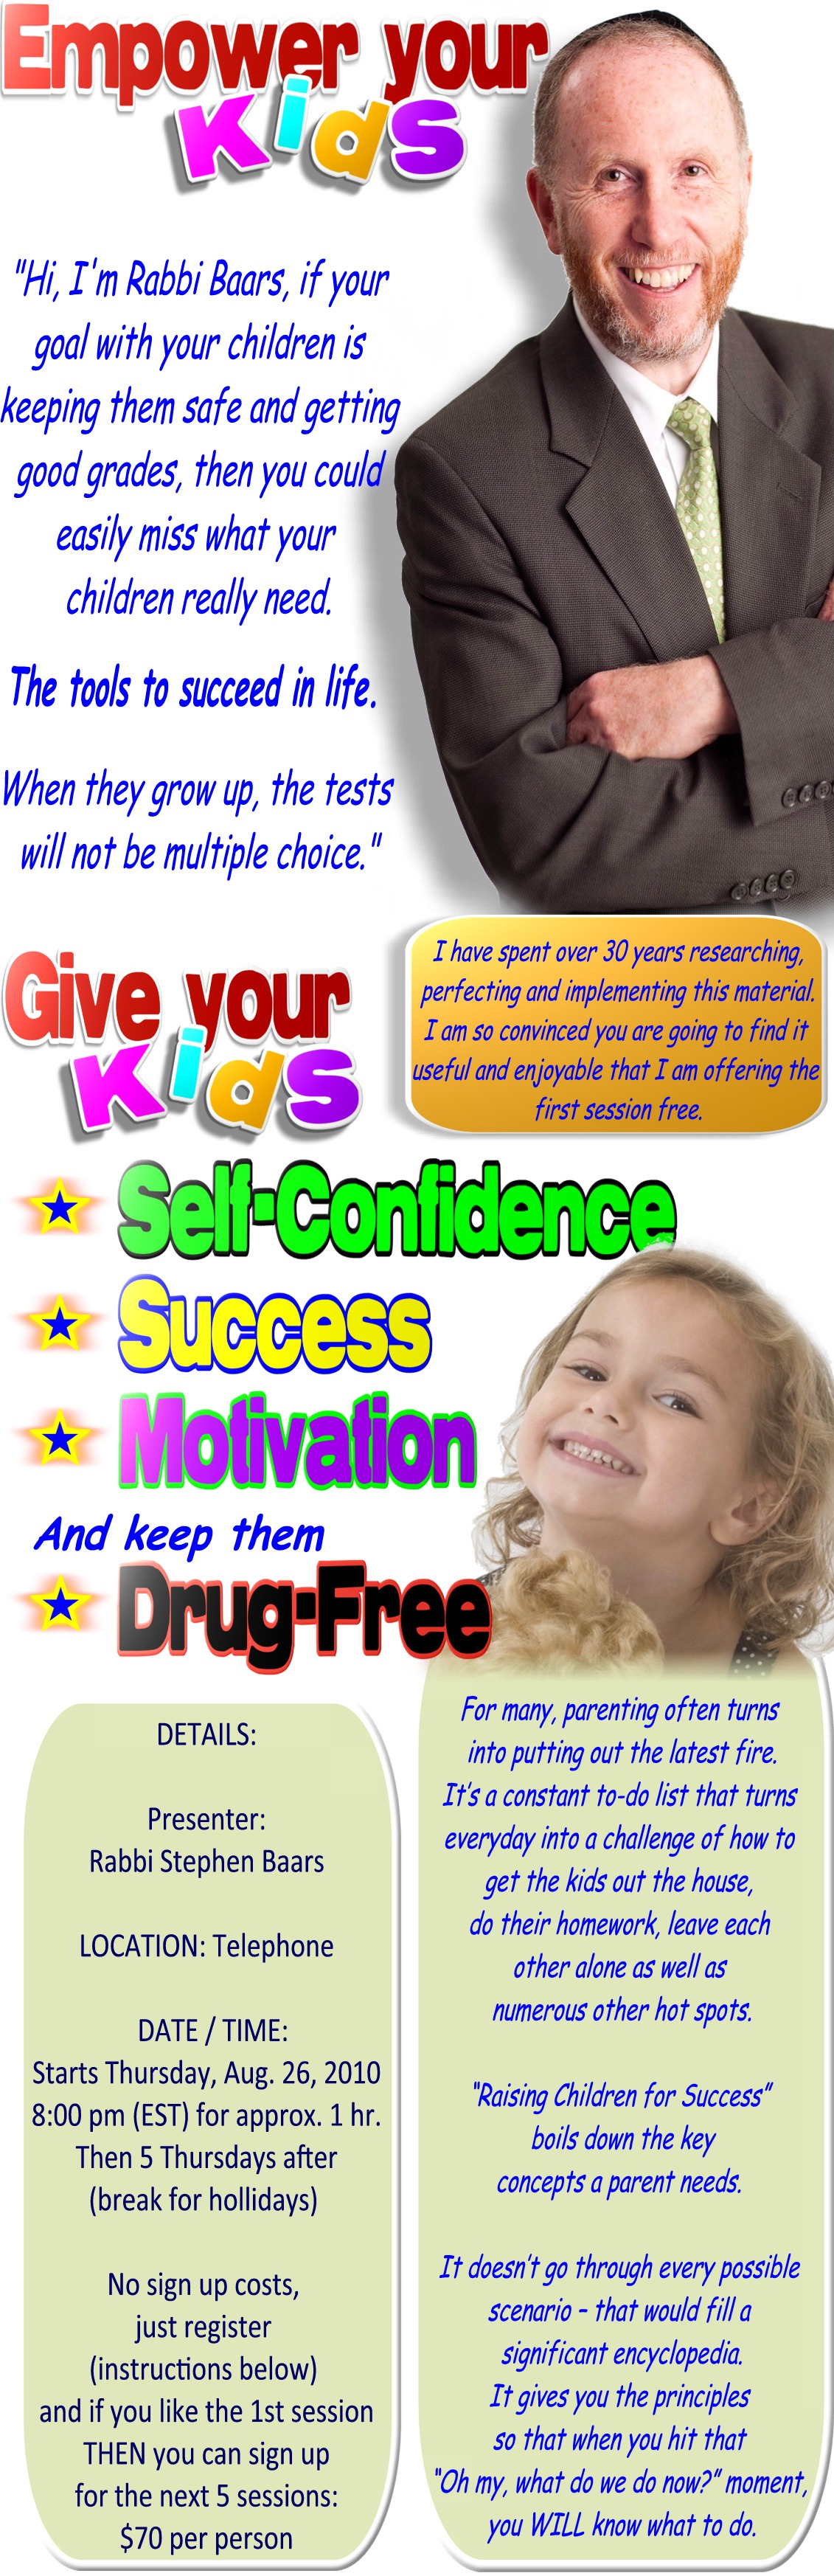 raising children for success 5.jpg